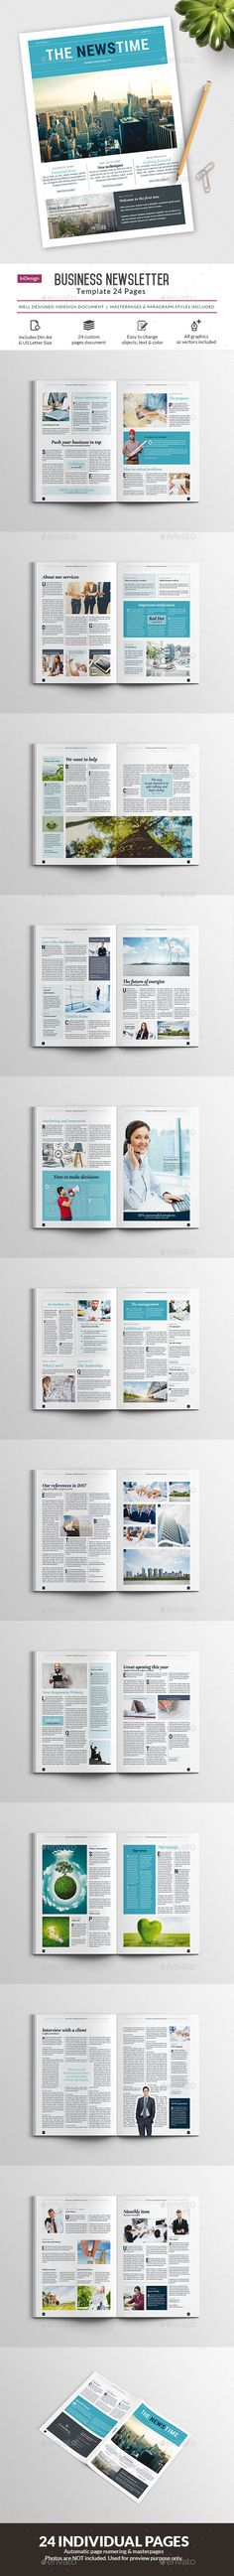 Clean Business Newsletter - 24 pages - #Newsletters Print #Templates Download here: https://graphicriver.net/item/clean-business-newsletter-24-pages/19296137?ref=alena994